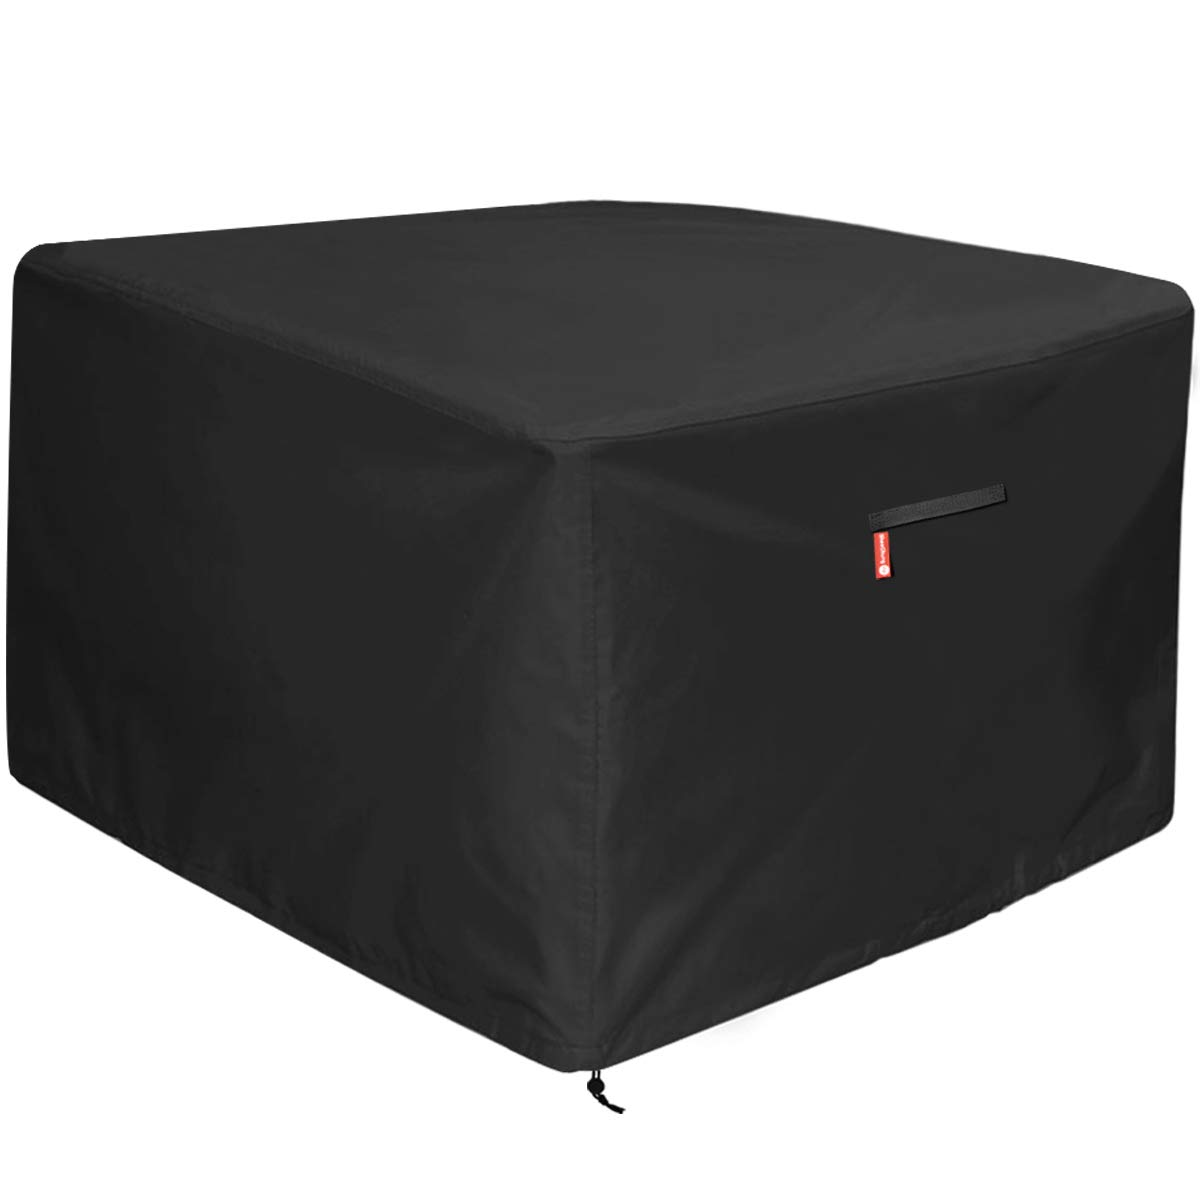 Amazoncom Gas Fire Pit Cover Square Premium Patio Outdoor Cover